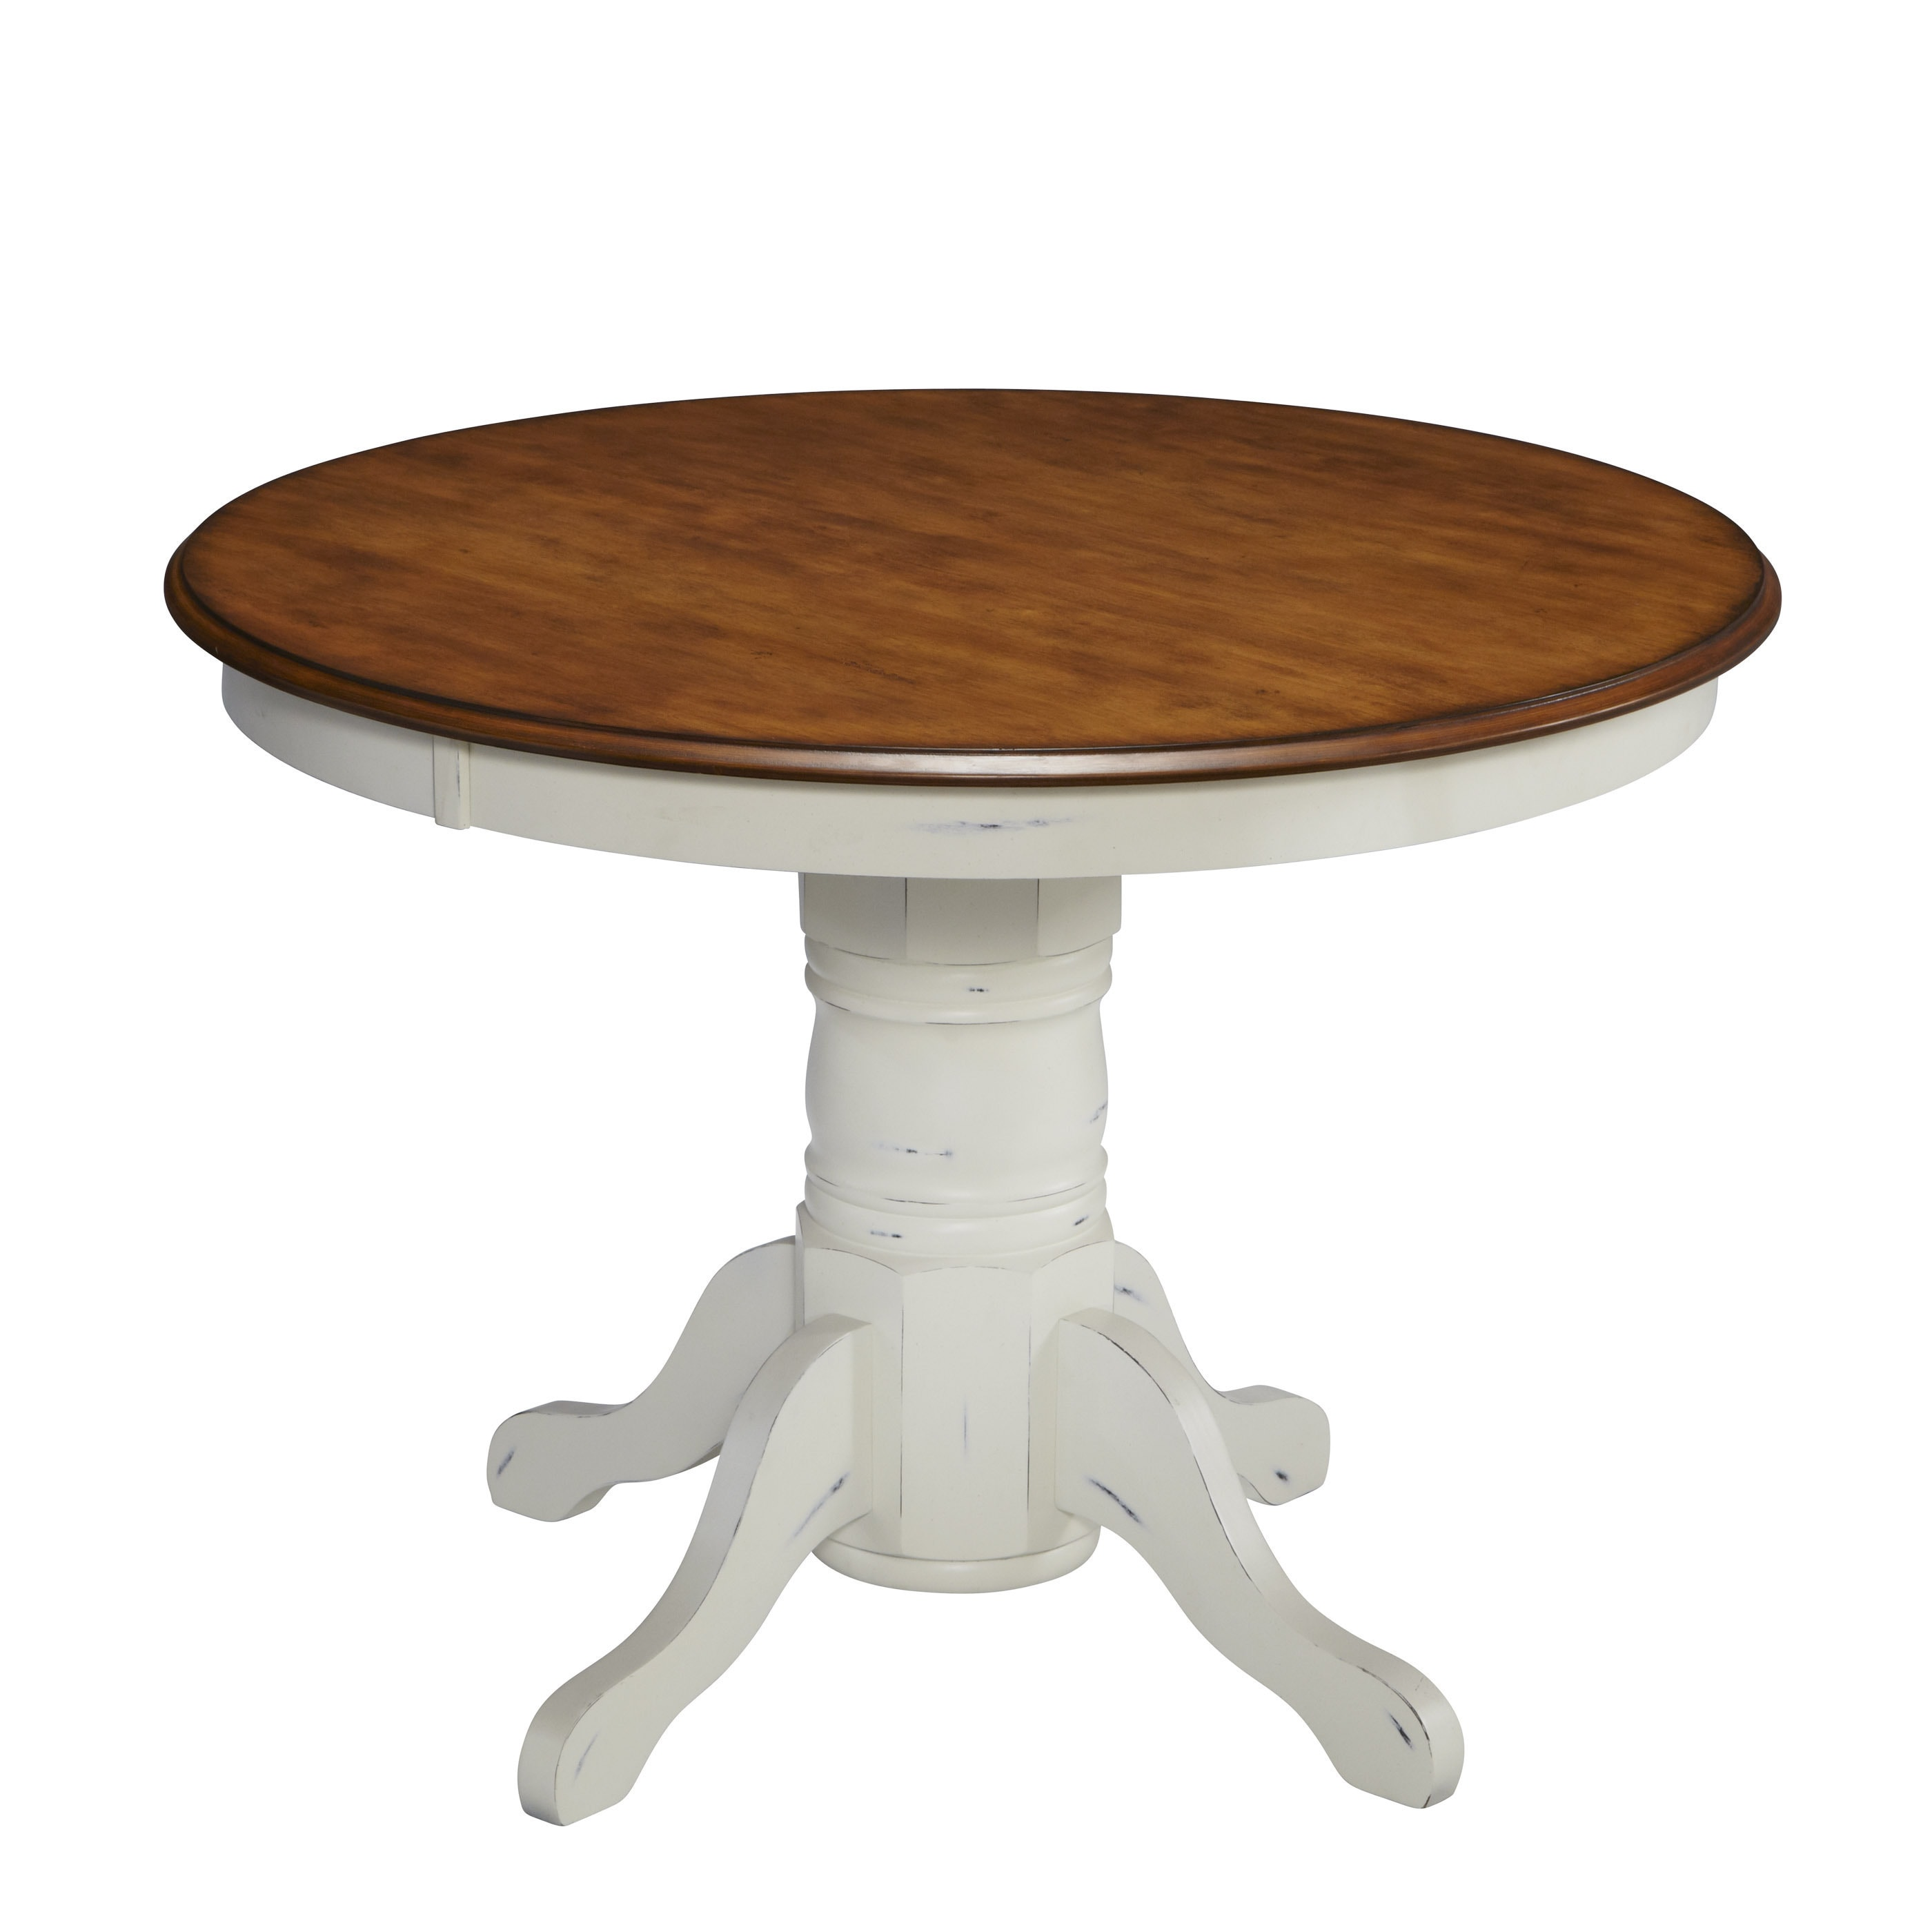 vintage manly round antique oak pedestal index table